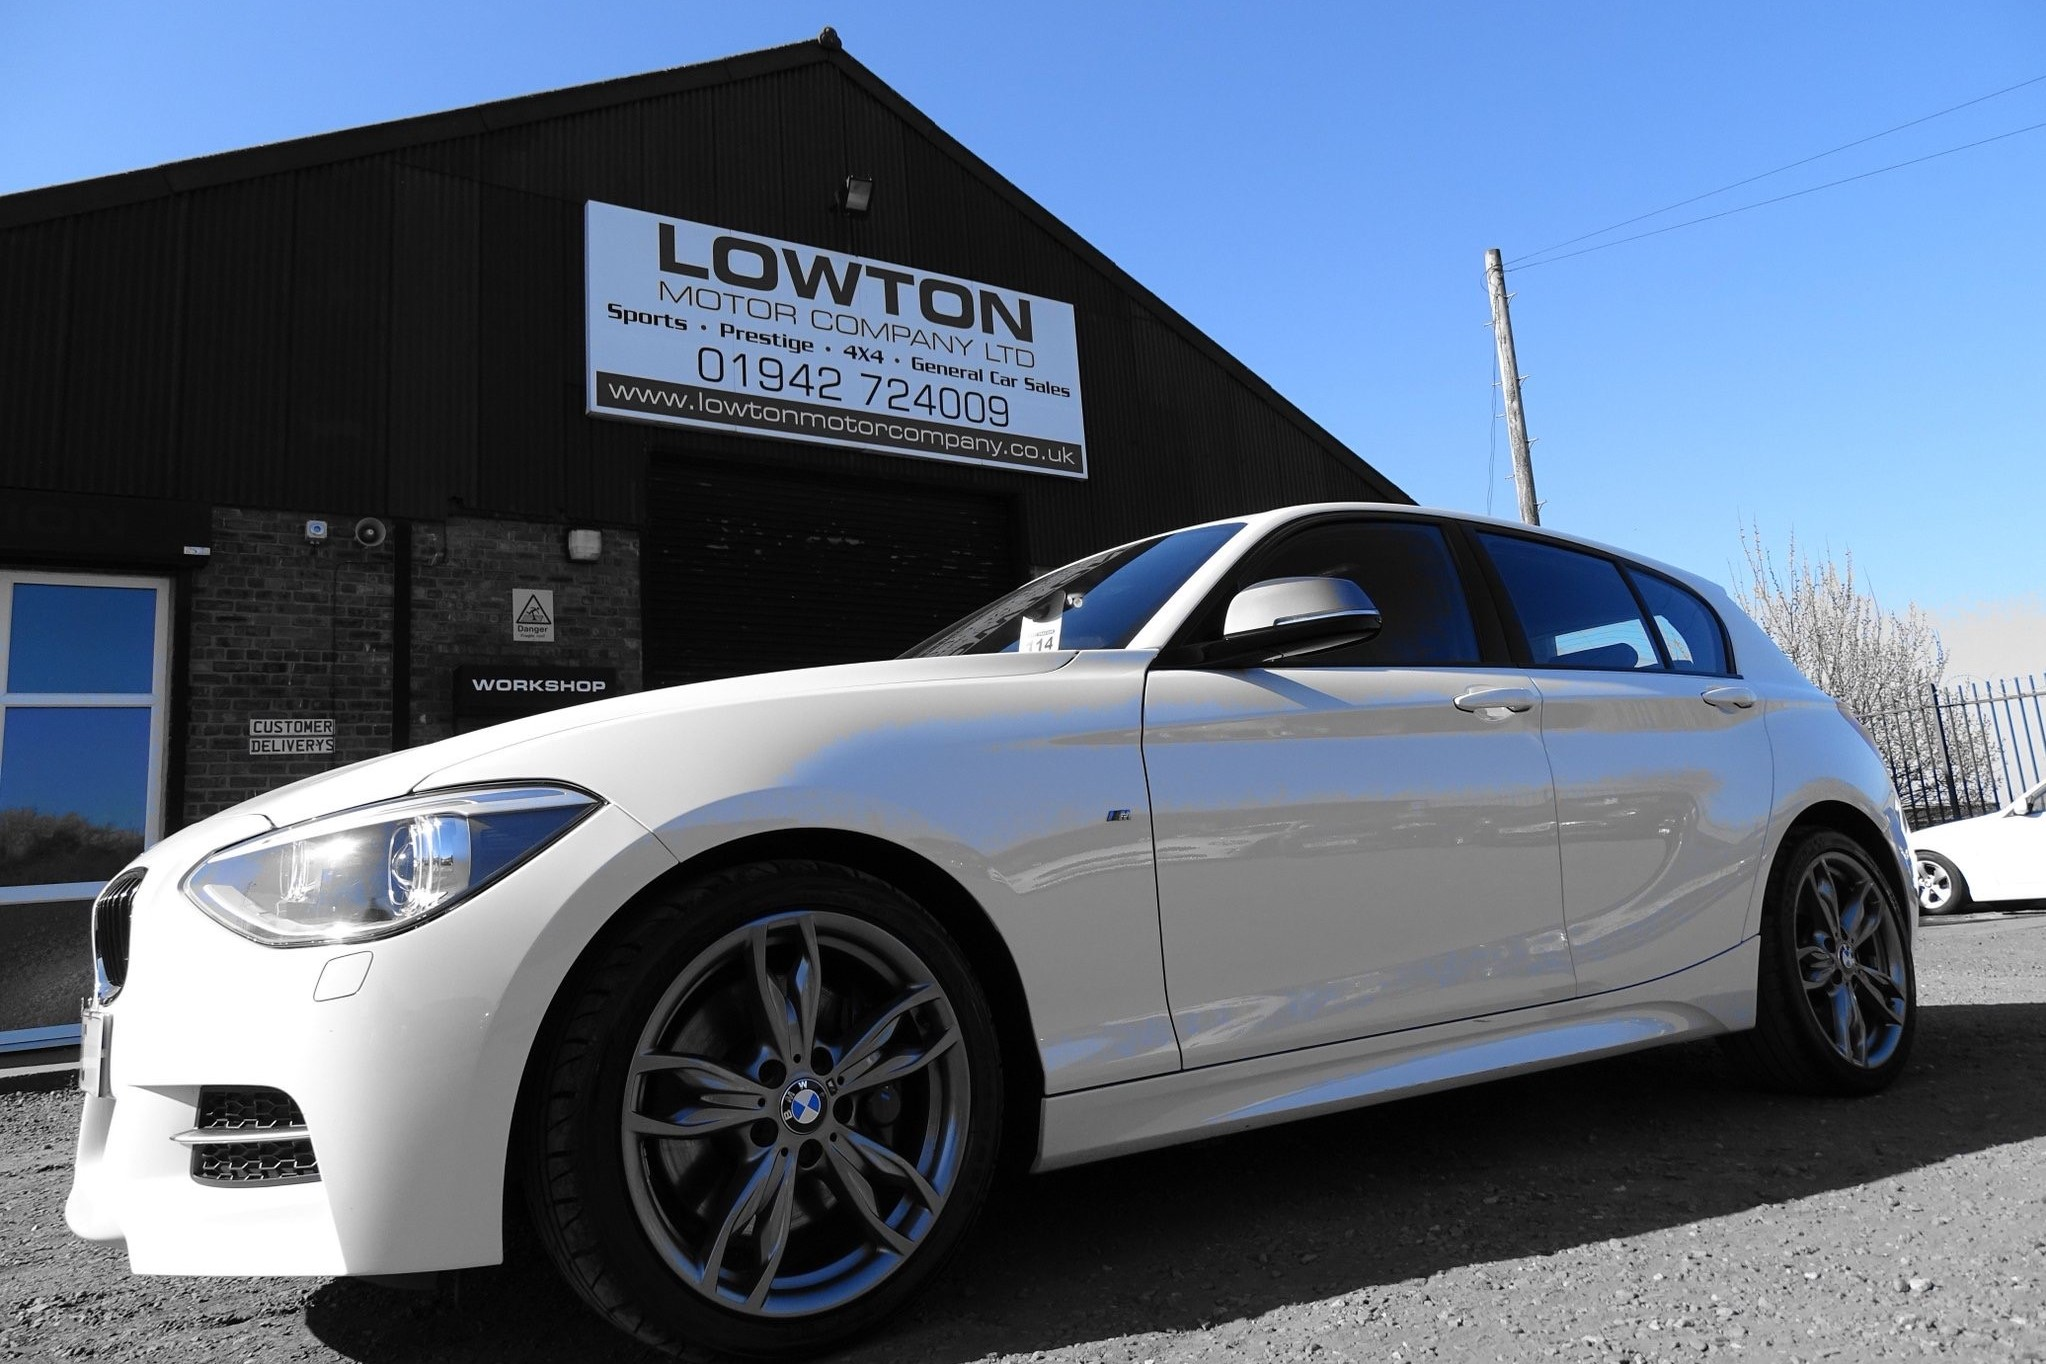 Time Finance drives future growth for Lowton Motor Company with £150k CBILS facility